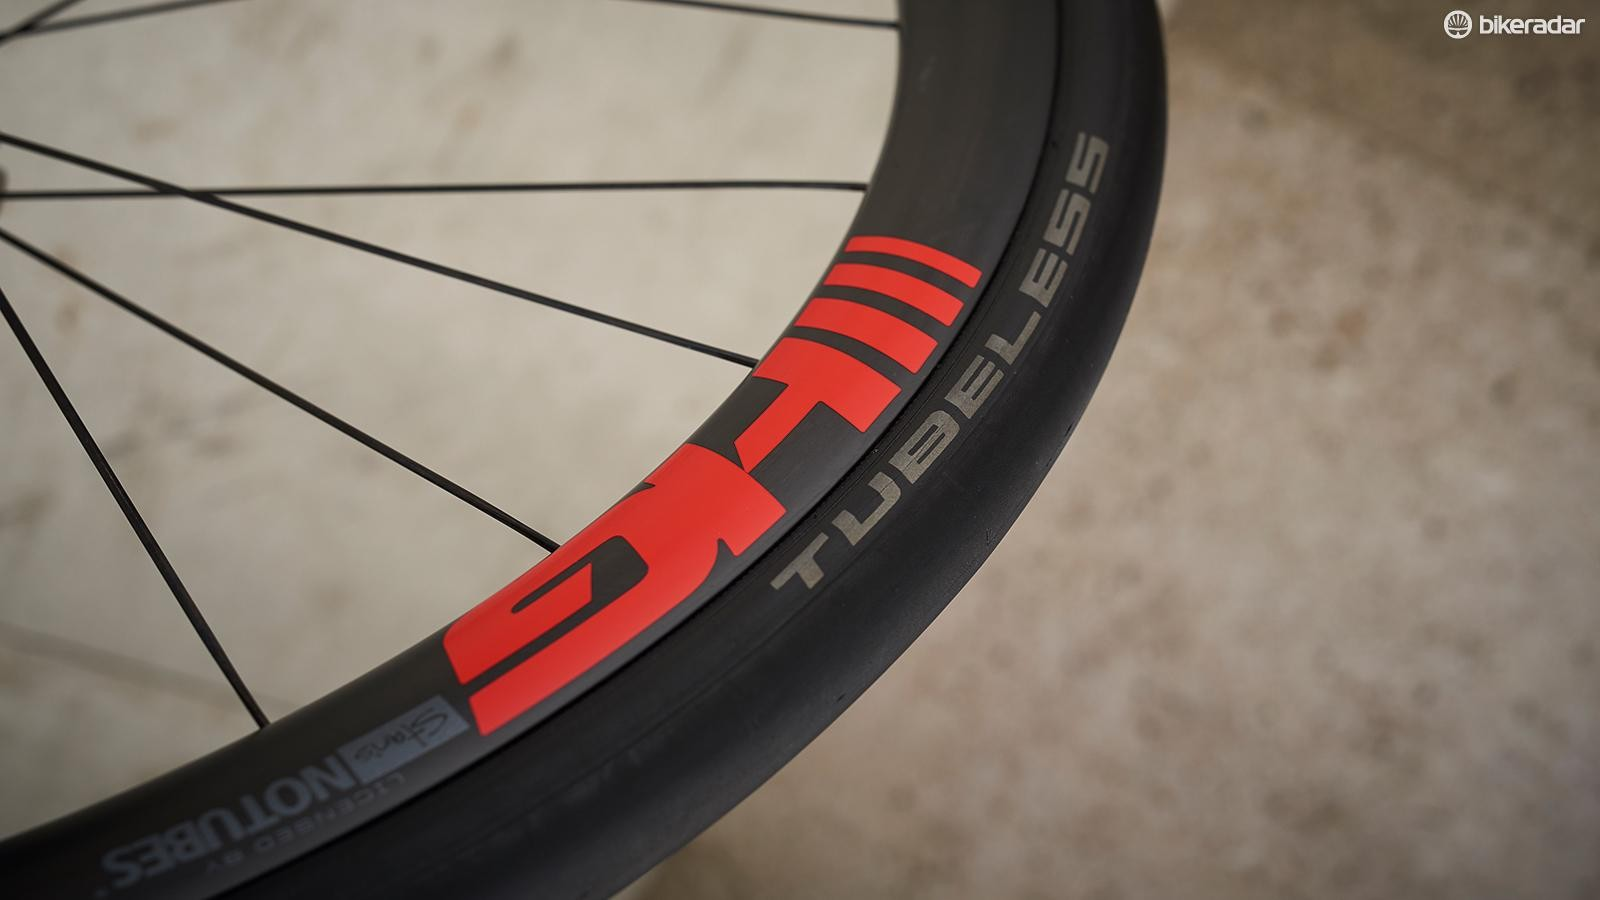 Convert the wheels to tubeless for more weight loss benefits